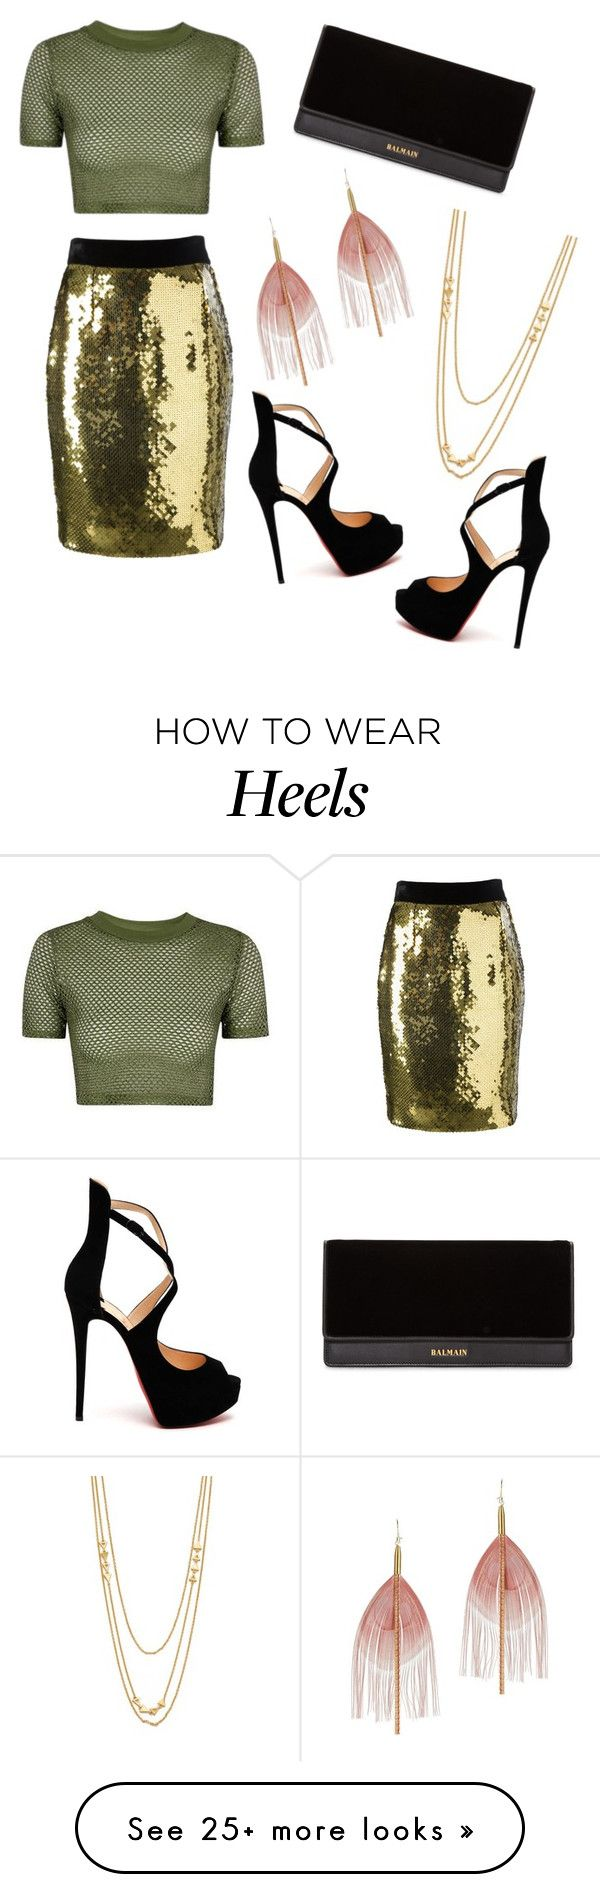 """""""Gold Skirt with Black Clutch and Heels"""" by its-katy on Polyvore featuring Moschino, Christian Louboutin, Balmain, Serefina, Gorjana and Topshop"""